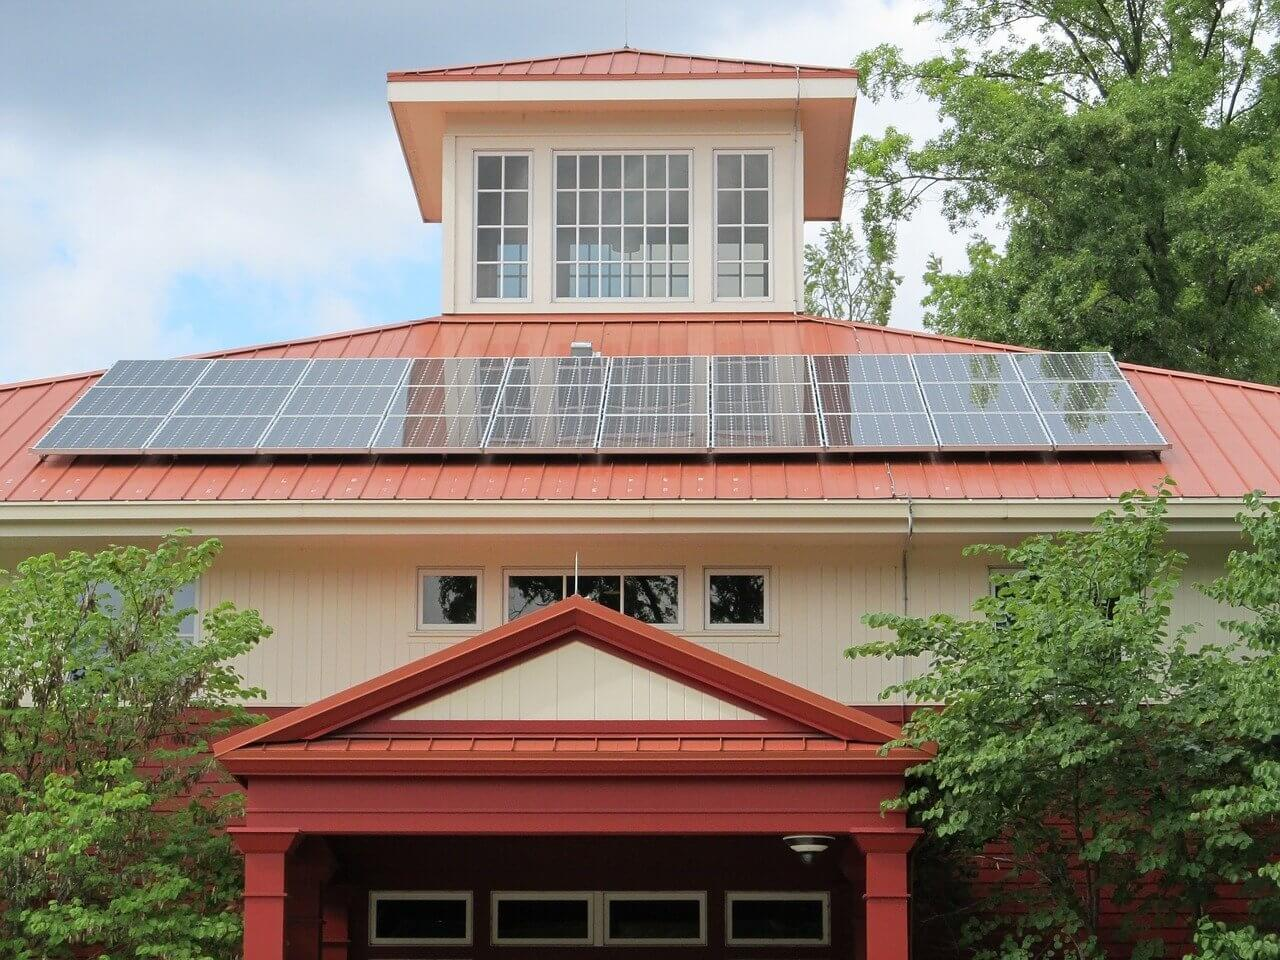 energy-saving tips for your home include